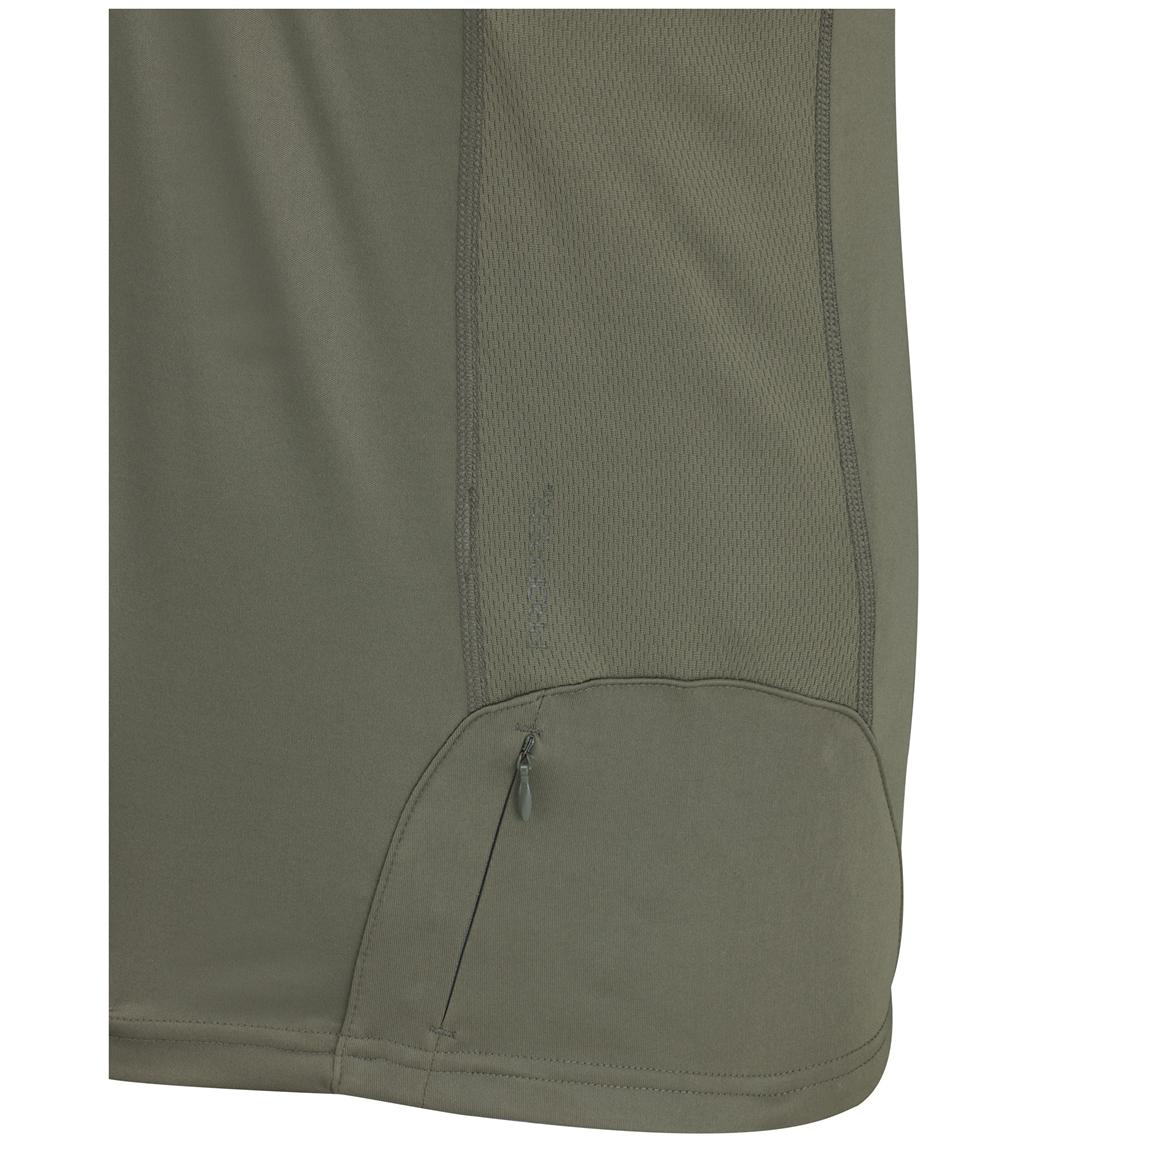 Extra zip pocket on hip for secure storage of accessories